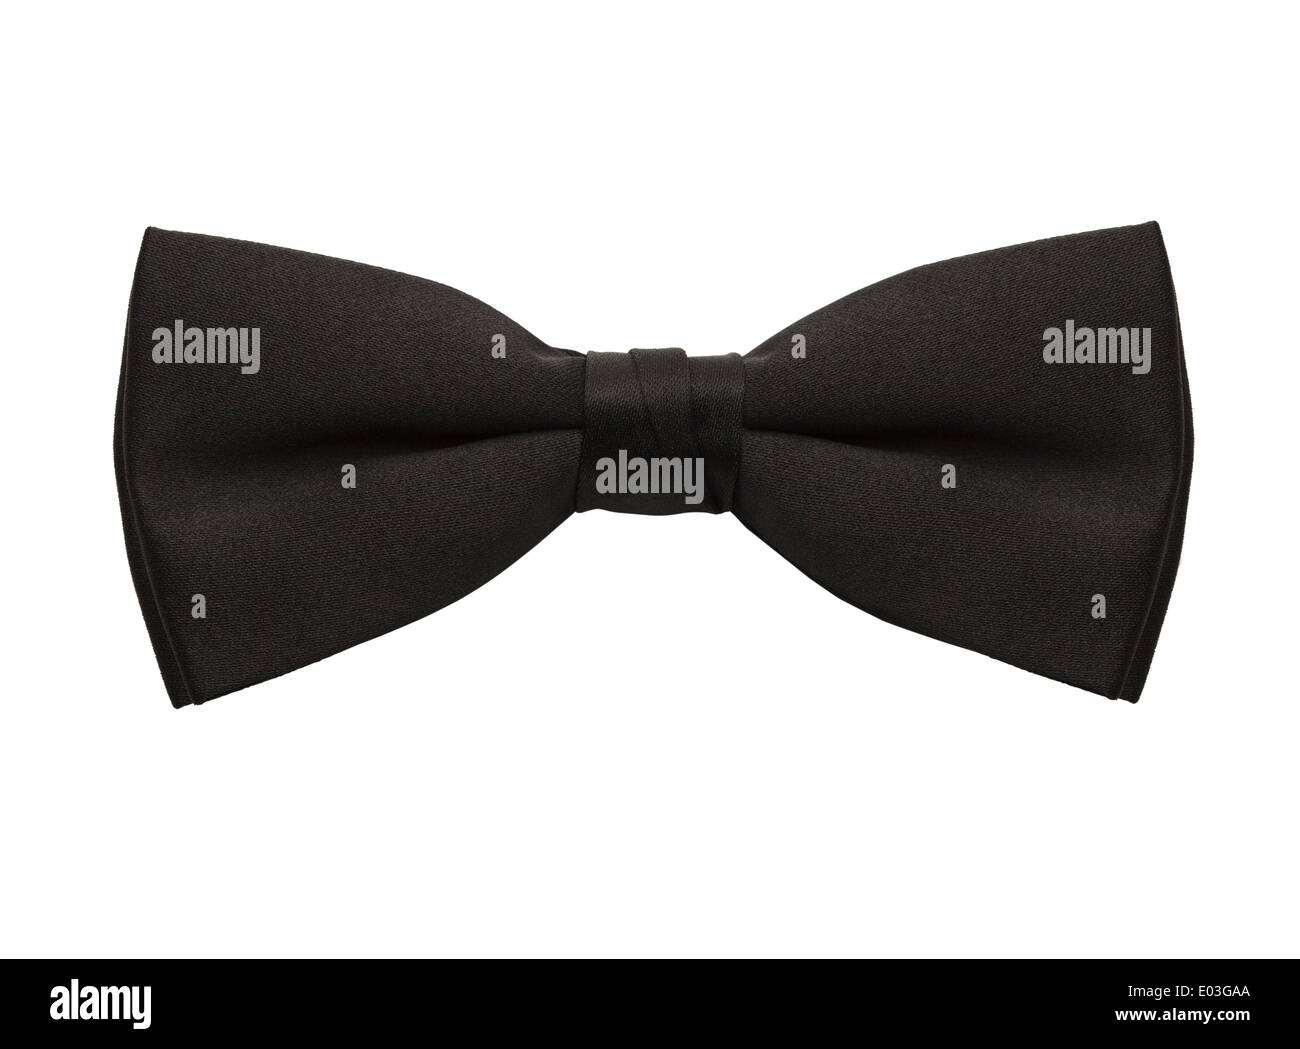 Black Bow Tie Isolated On White Background. Stock Photo